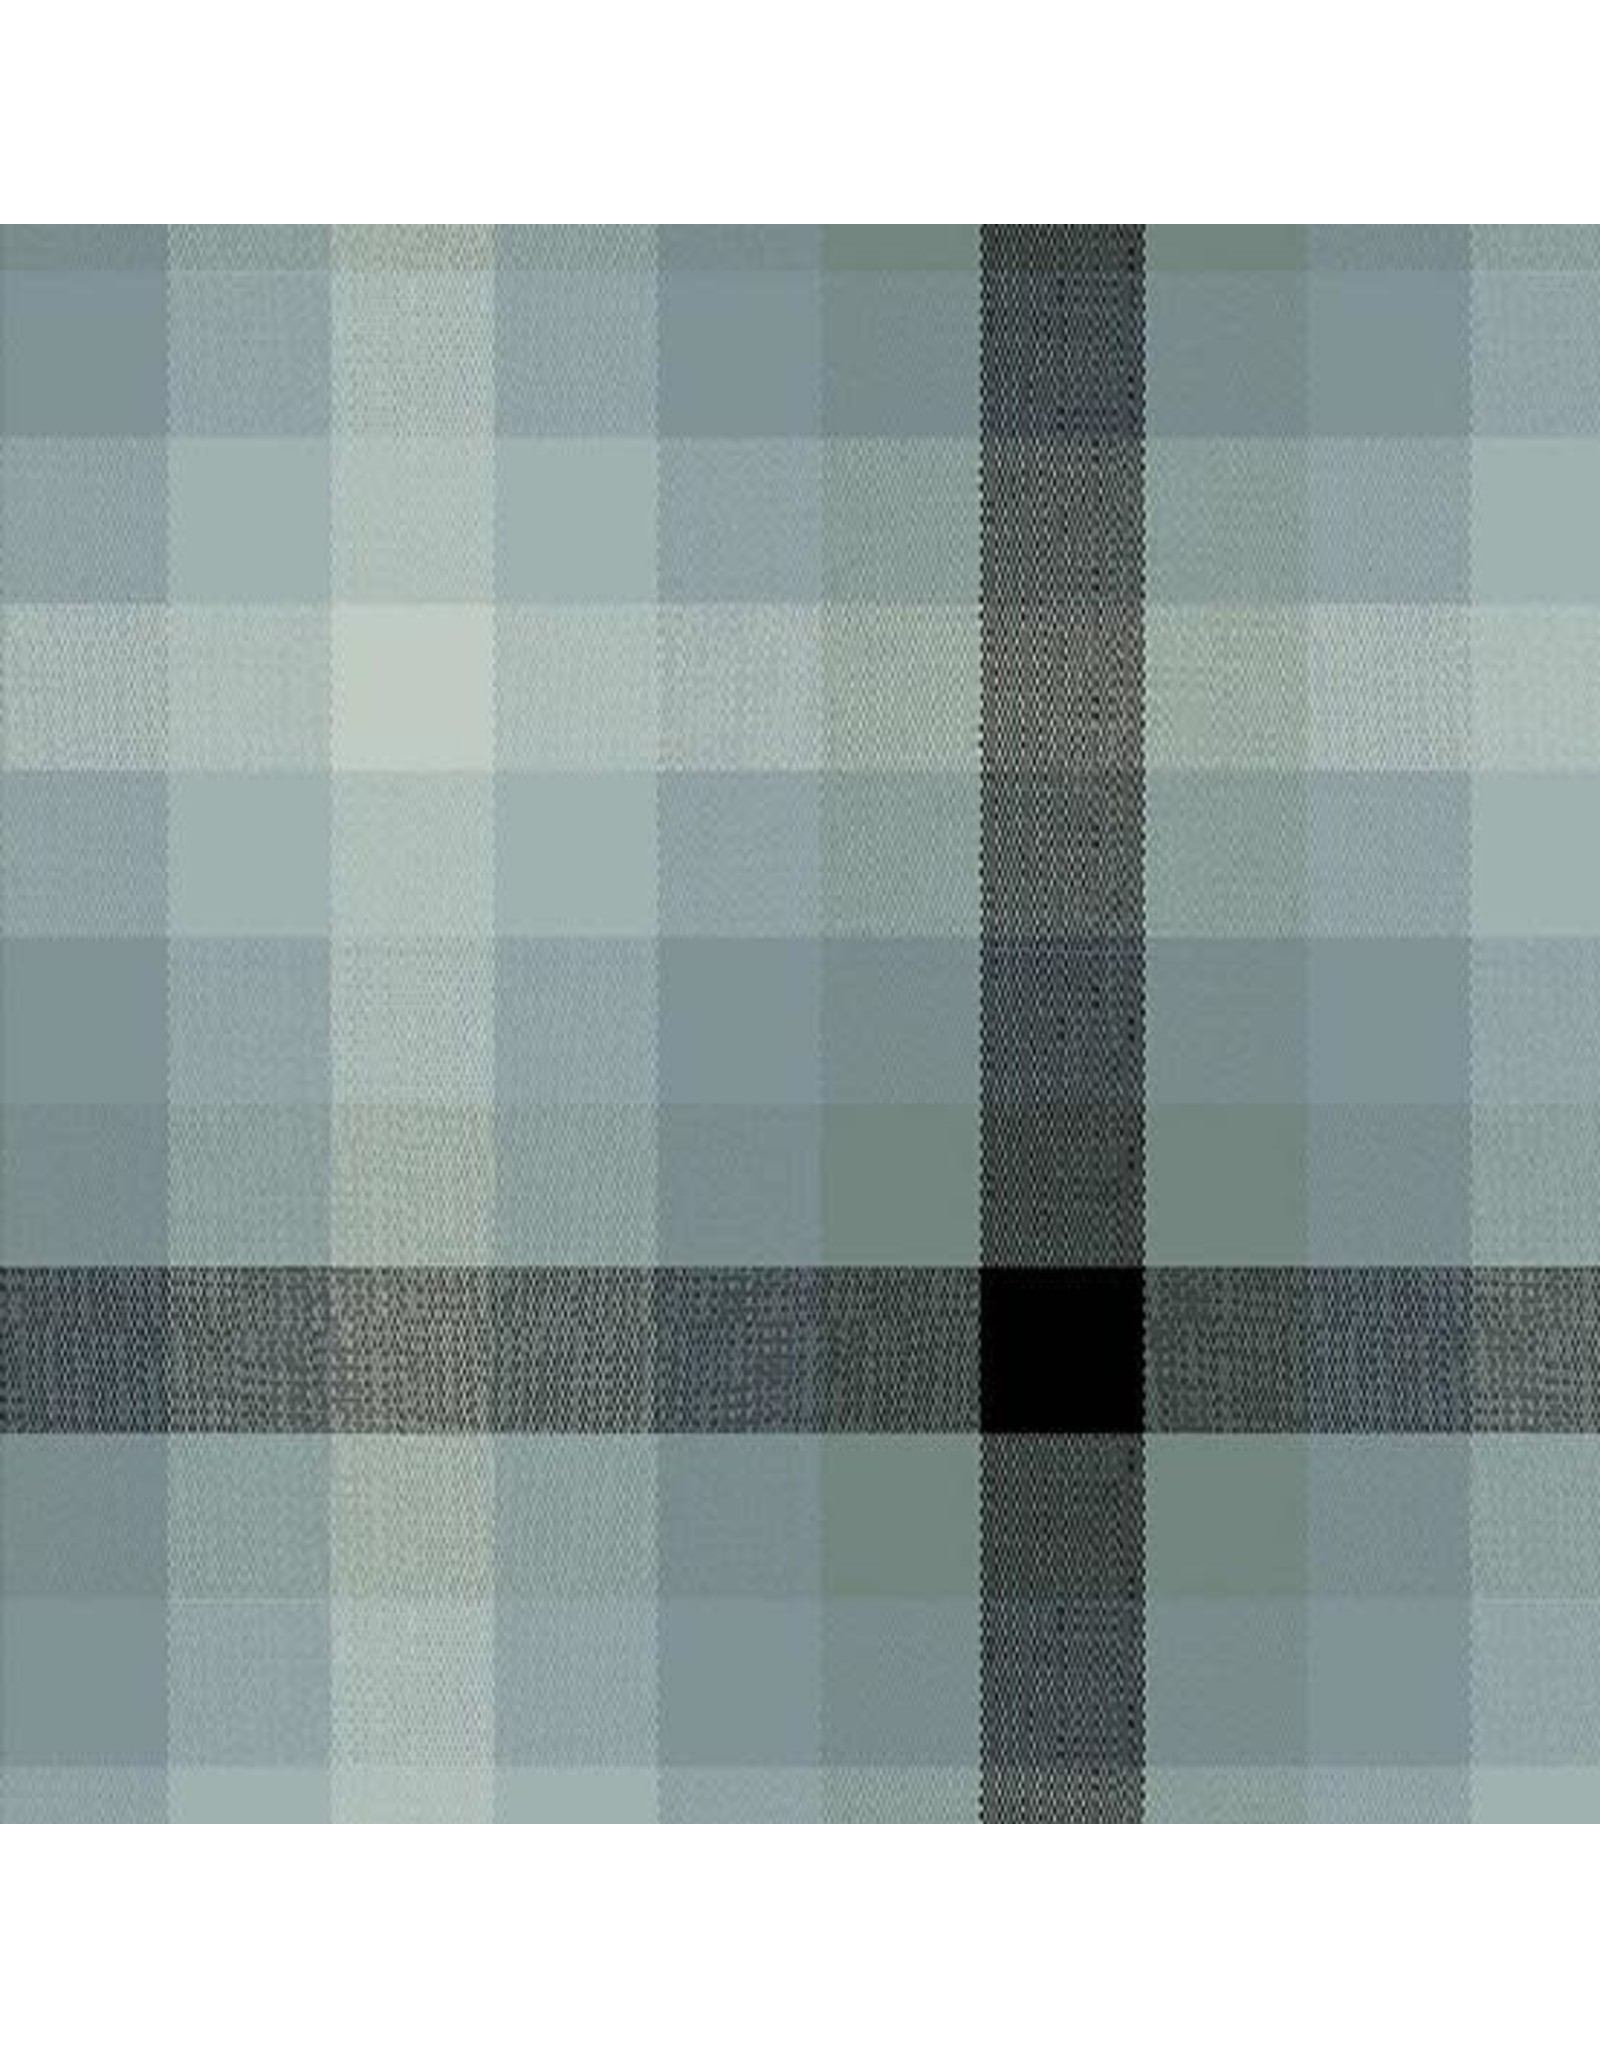 Alison Glass Kaleidoscope Stripes and Plaids, Plaid in Charcoal, Fabric Half-Yards